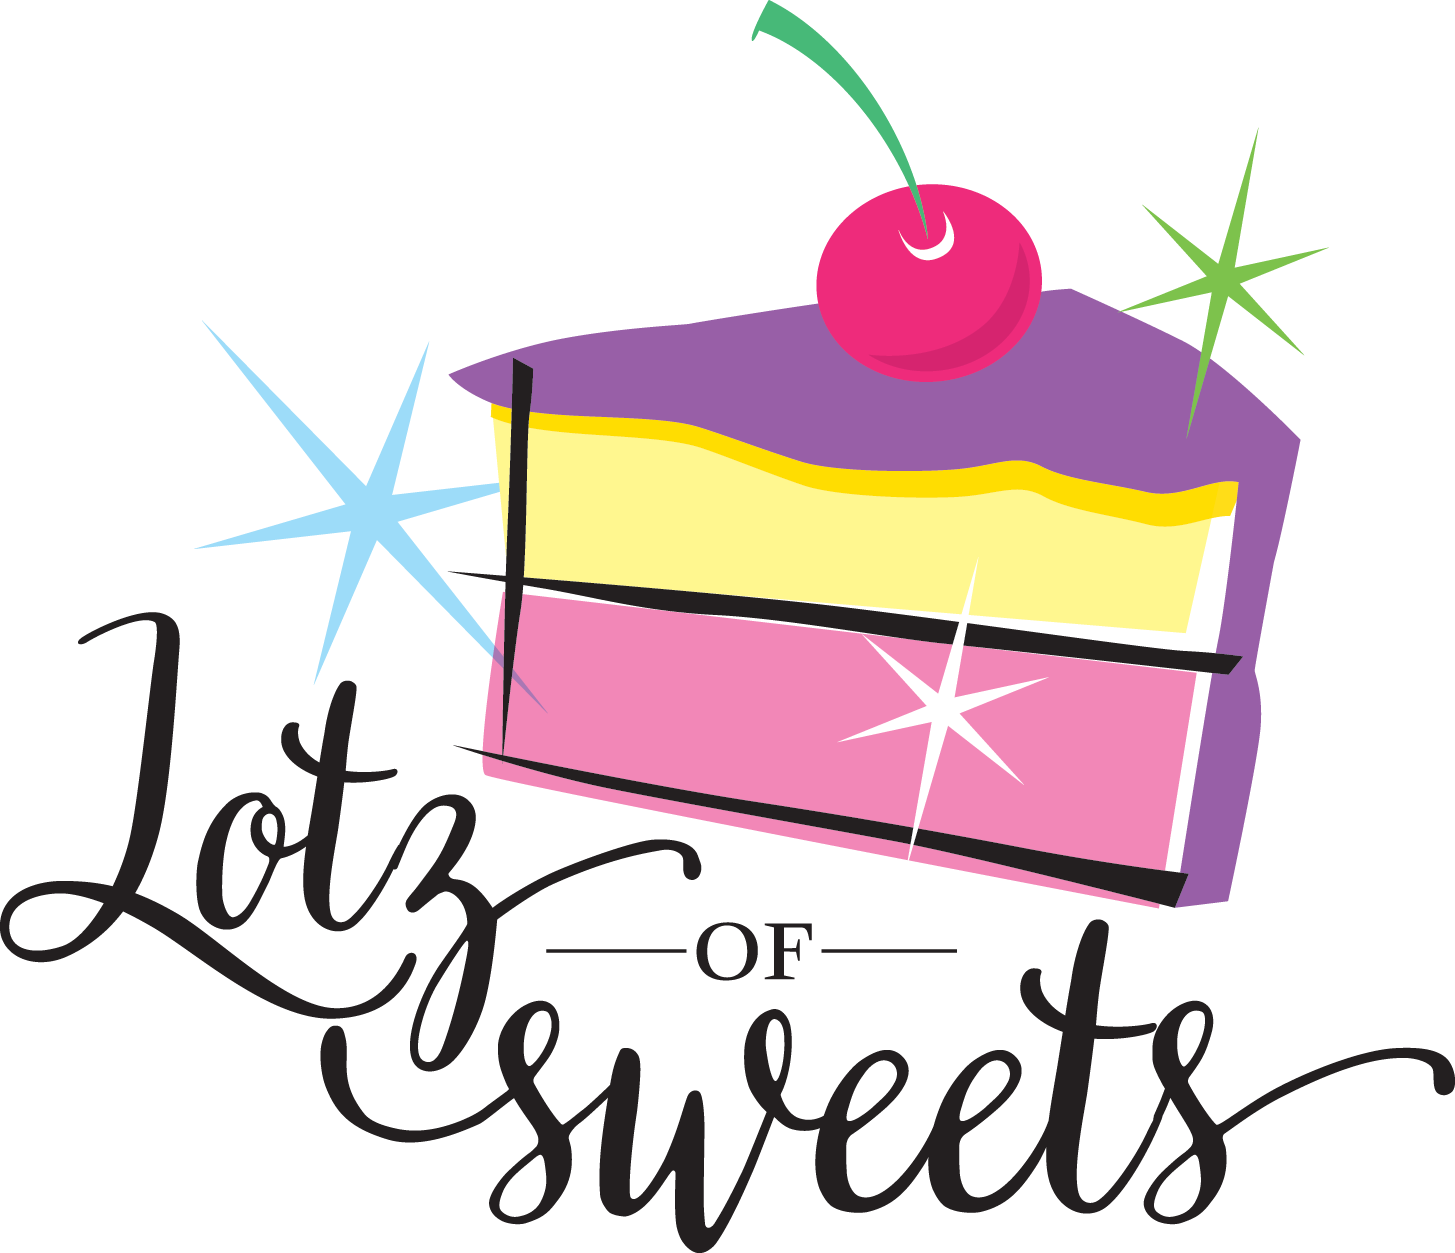 Lotz of sweets dessert. Desserts clipart candy